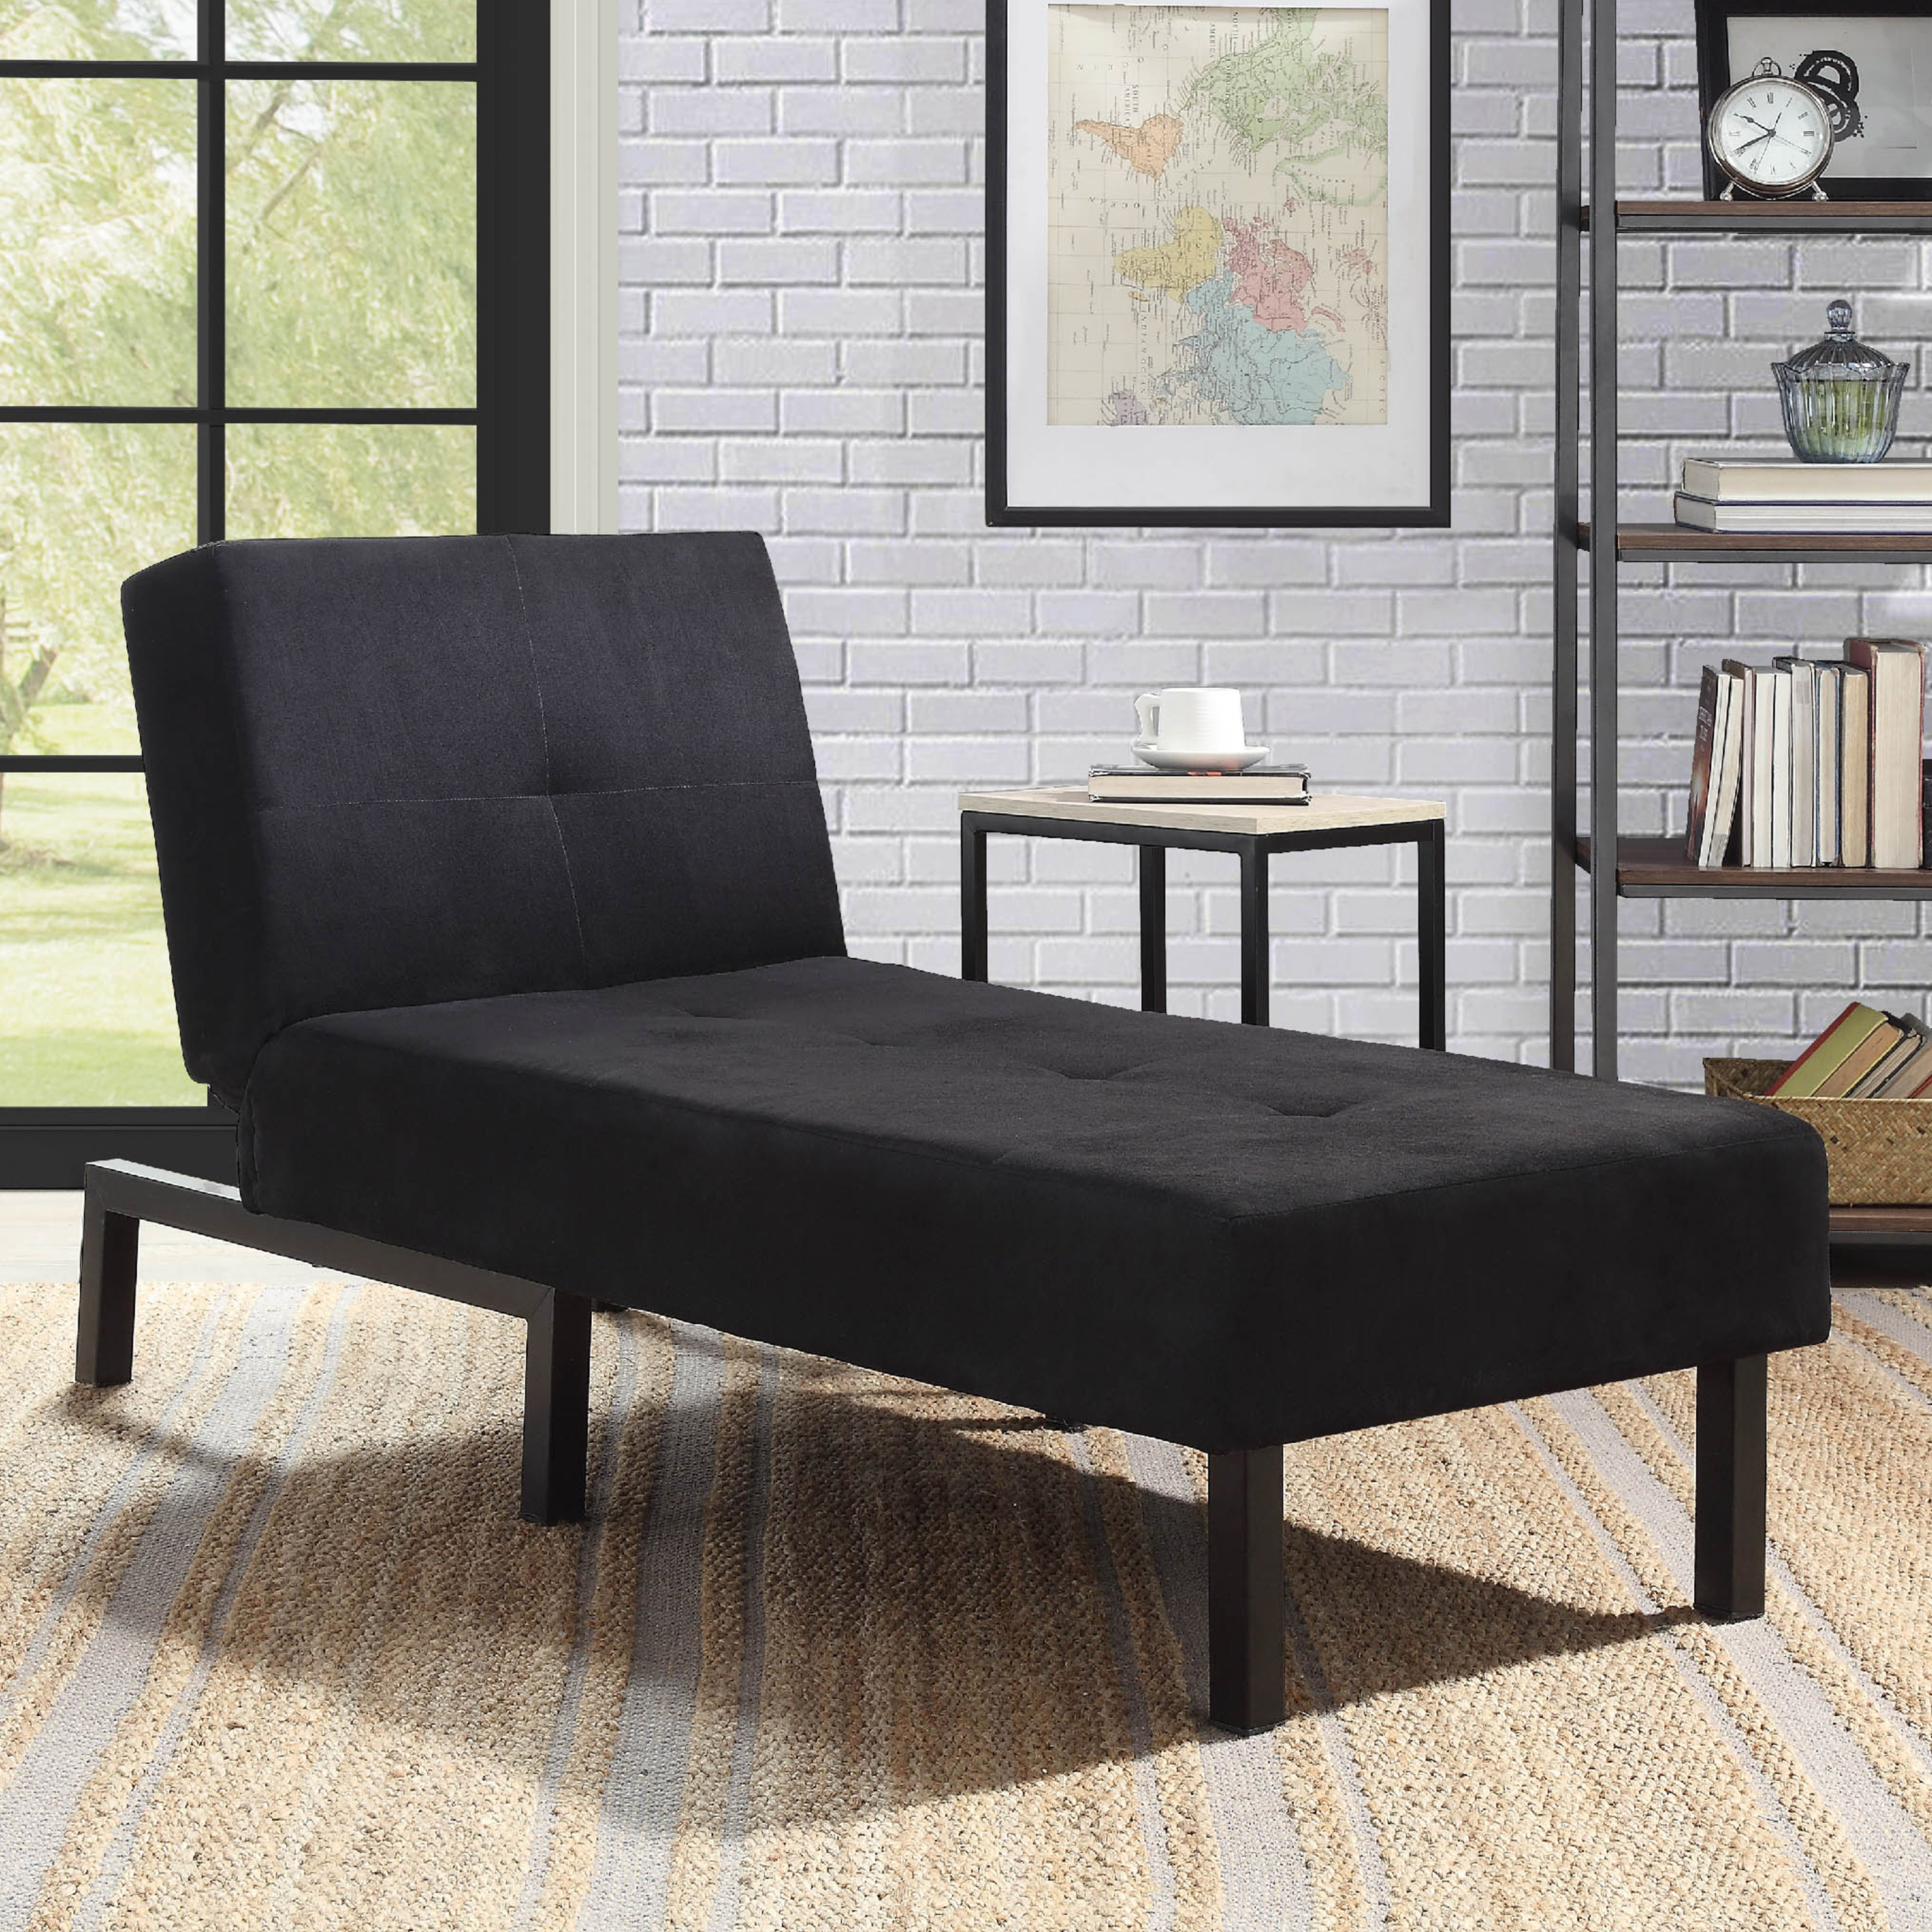 Mainstays 3-Position Chaise Lounge, Black Microfiber Upholstery